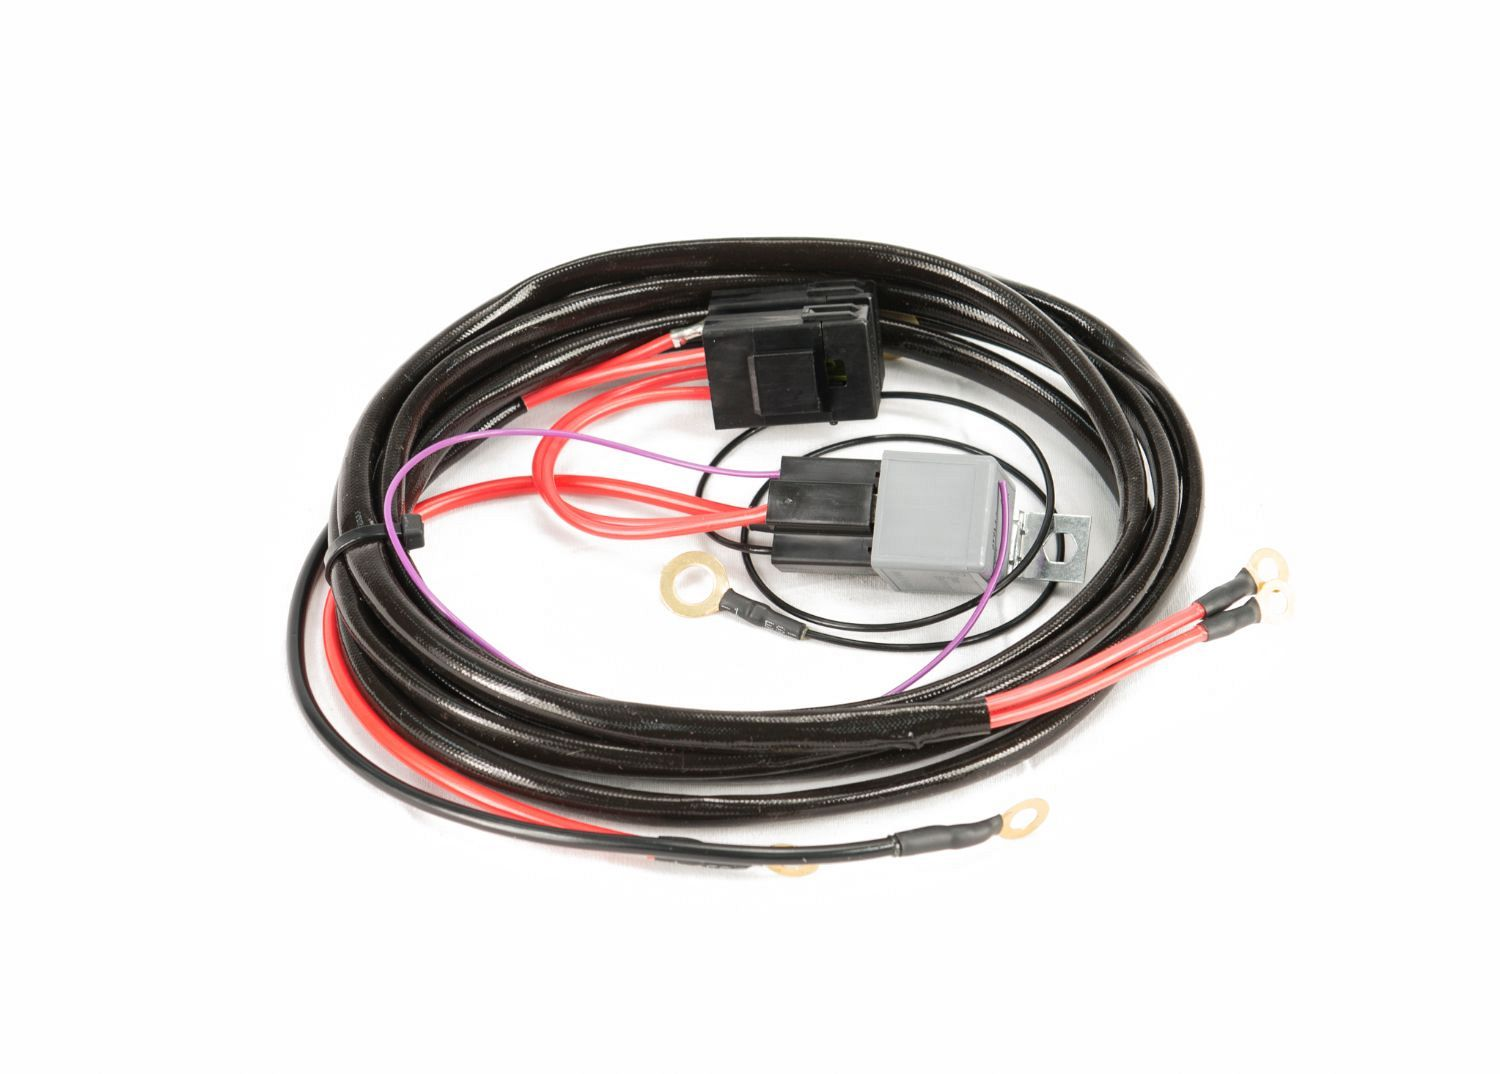 hight resolution of anti surge twin pump fuel system wiring harness suits ford falcon fg